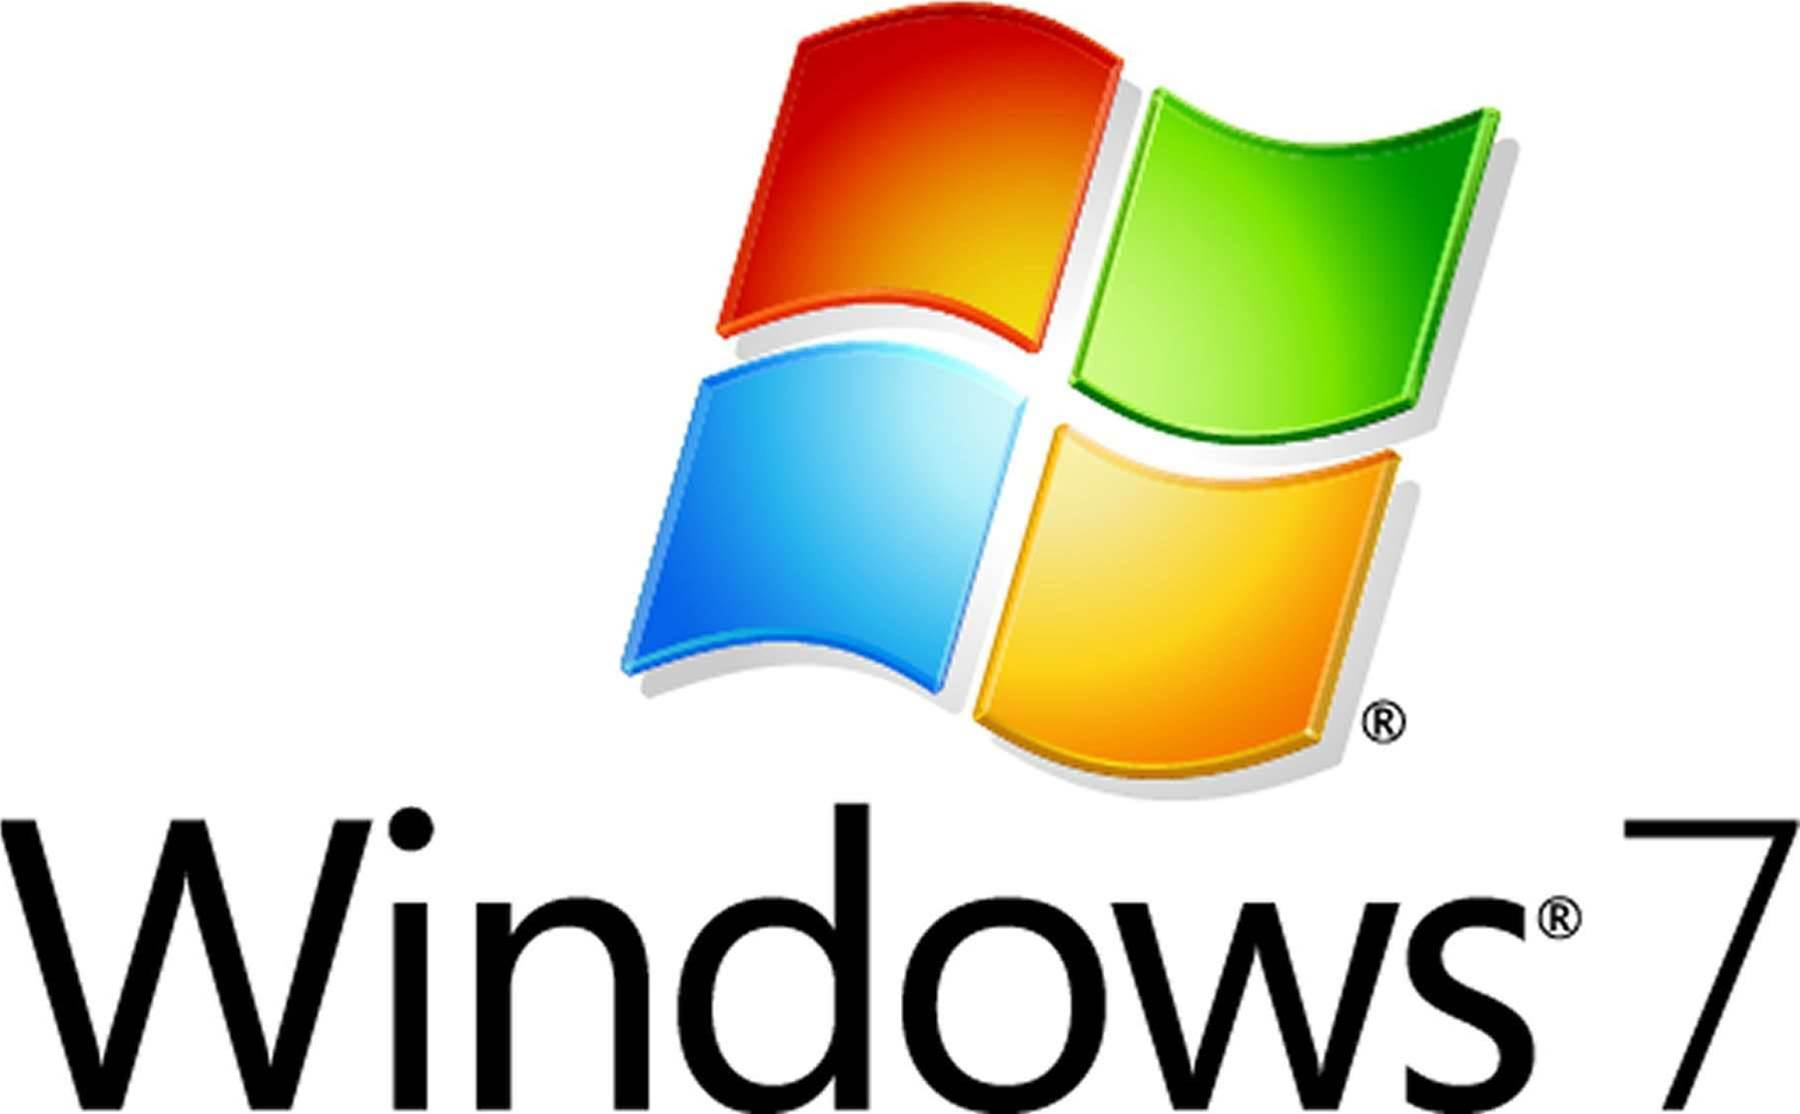 65% of Windows devices run Windows 7, where 600 vulnerabilities reside